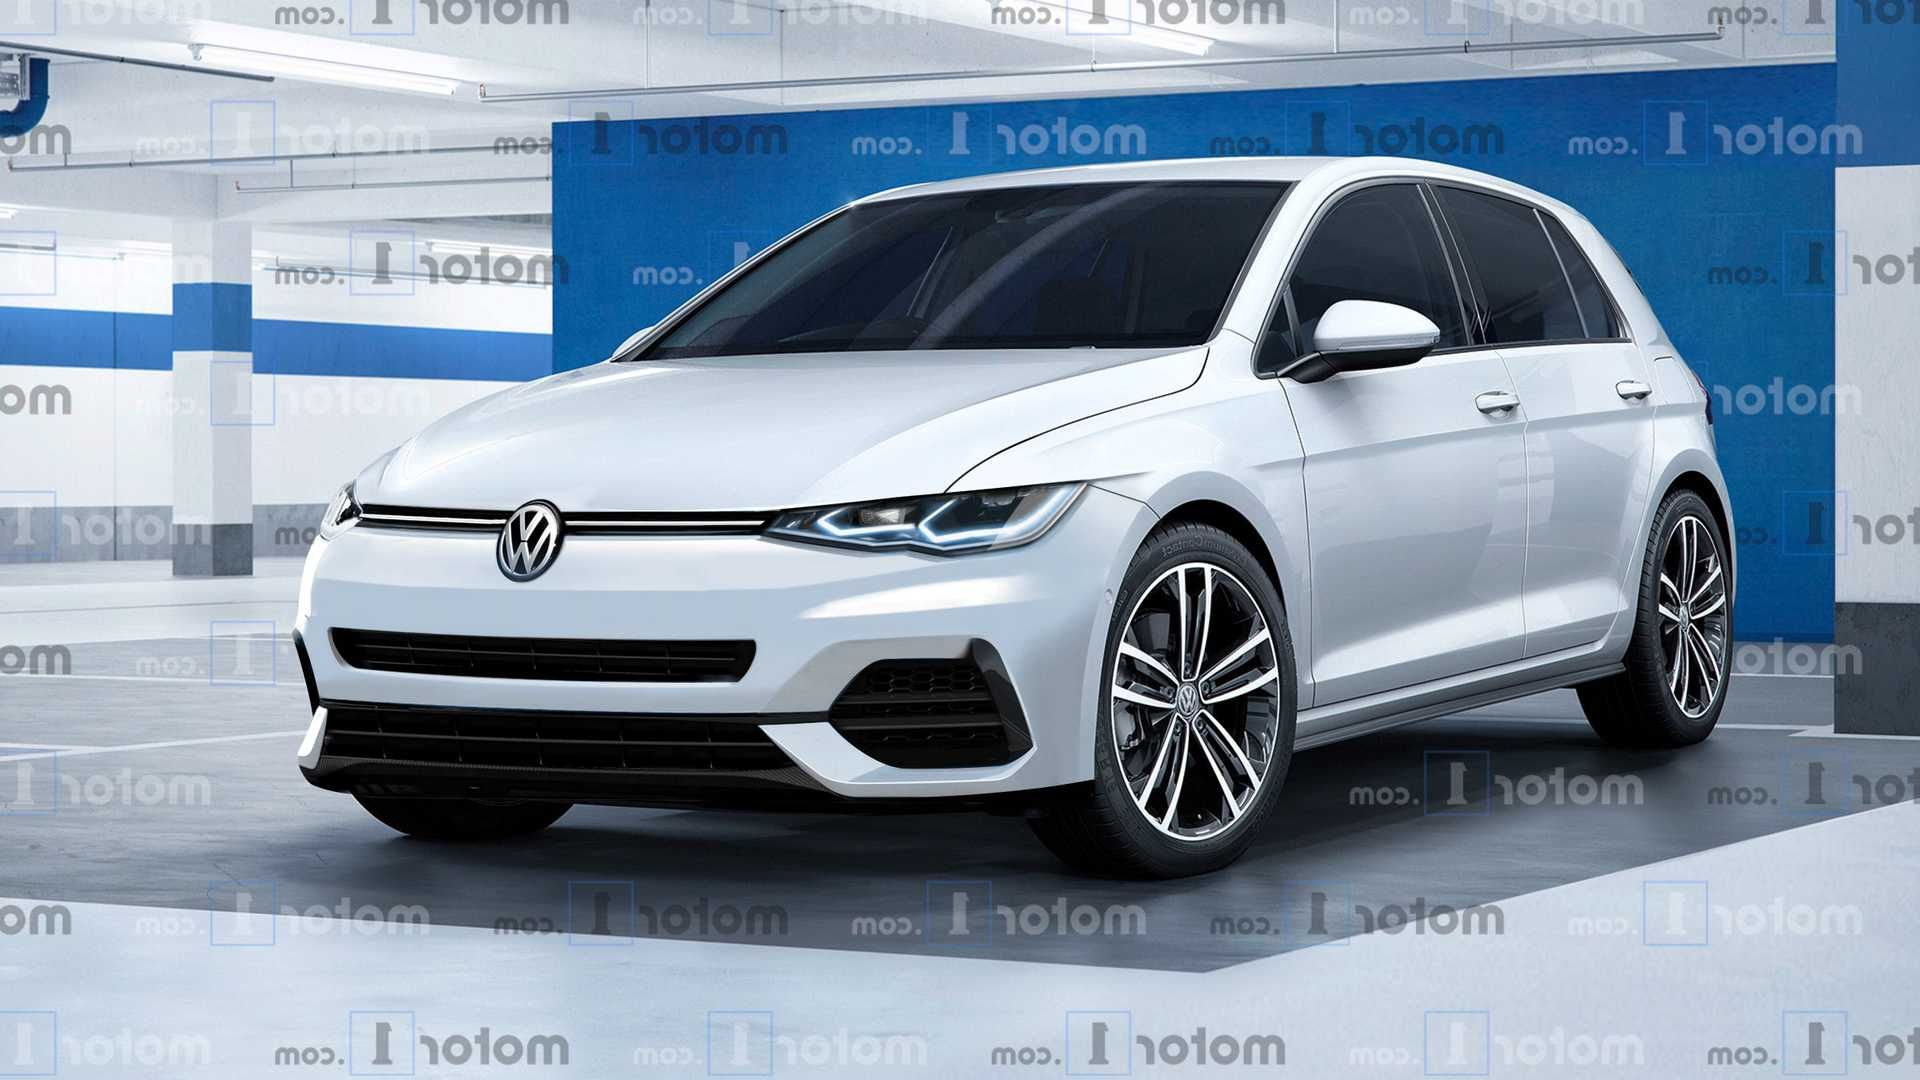 2021 Volkswagen Golf Fiyat Release Date Color Prices In 2020 Volkswagen Volkswagen Golf Volkswagen Golf Gti